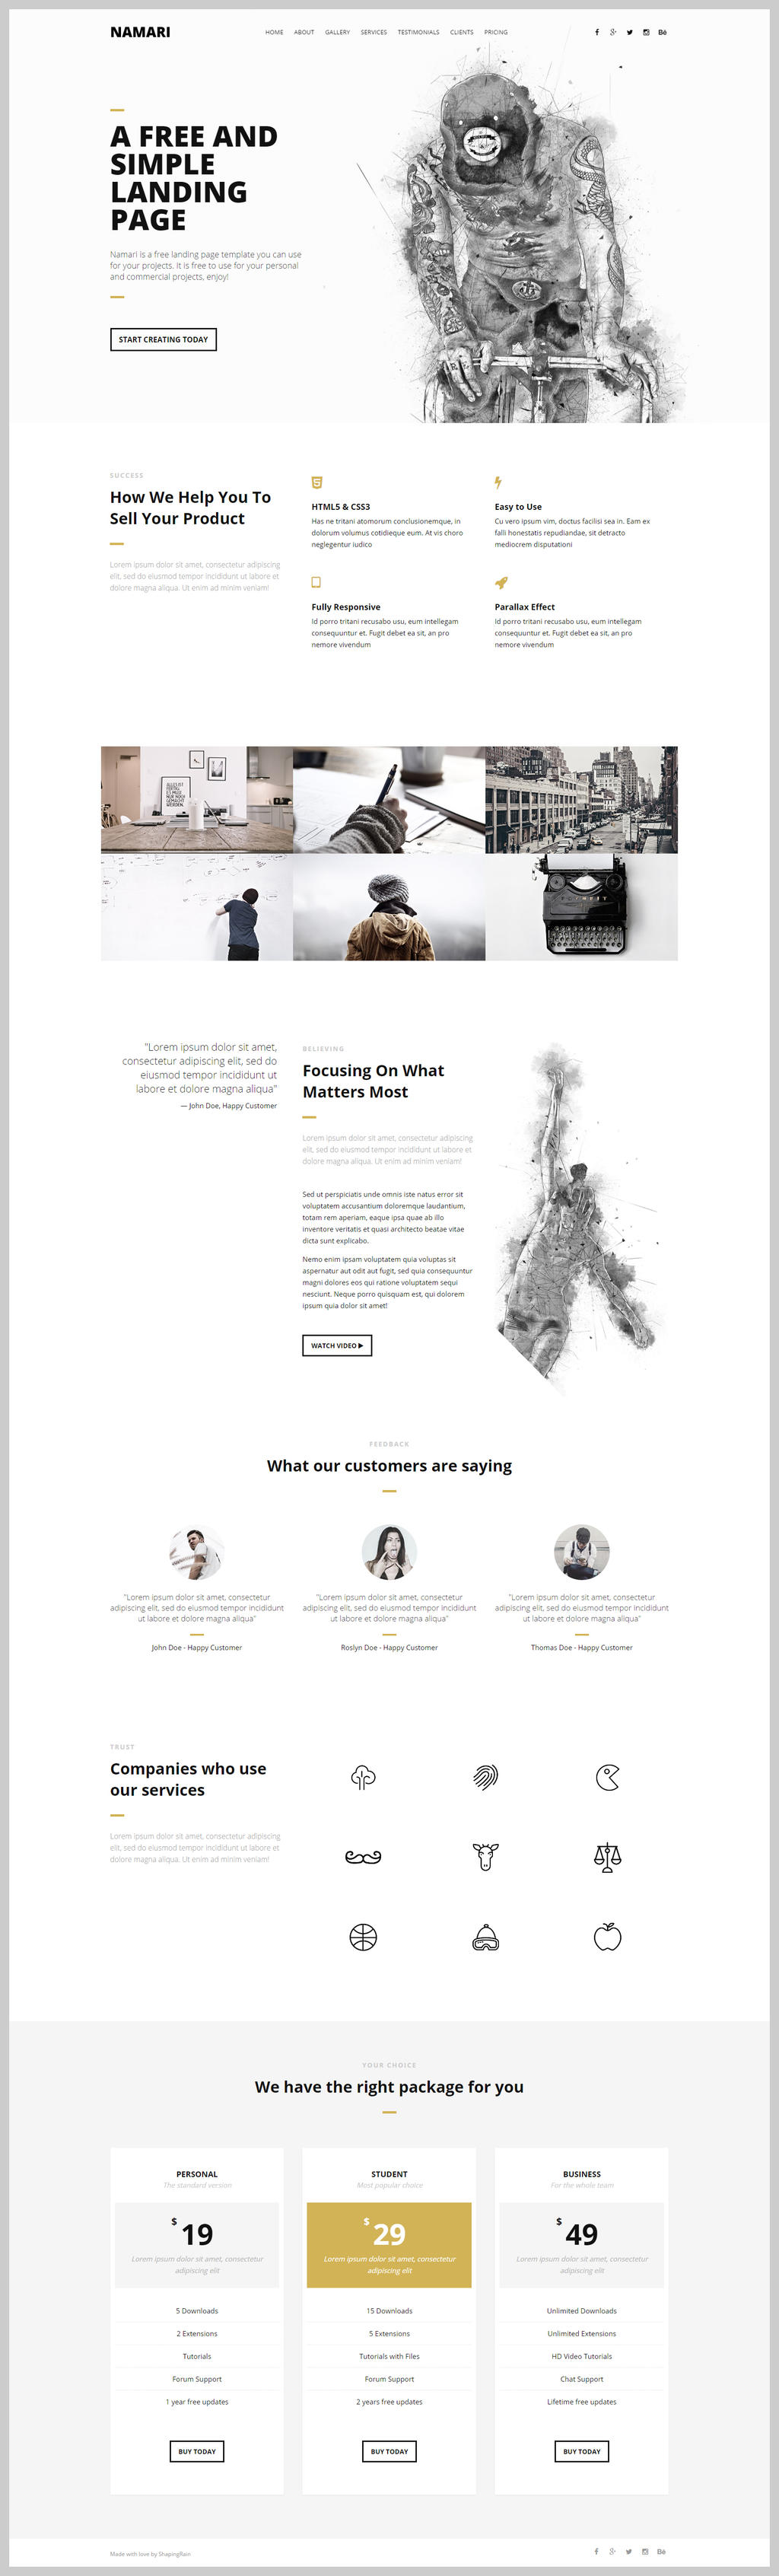 Free Landing Page Template by NilsHuber